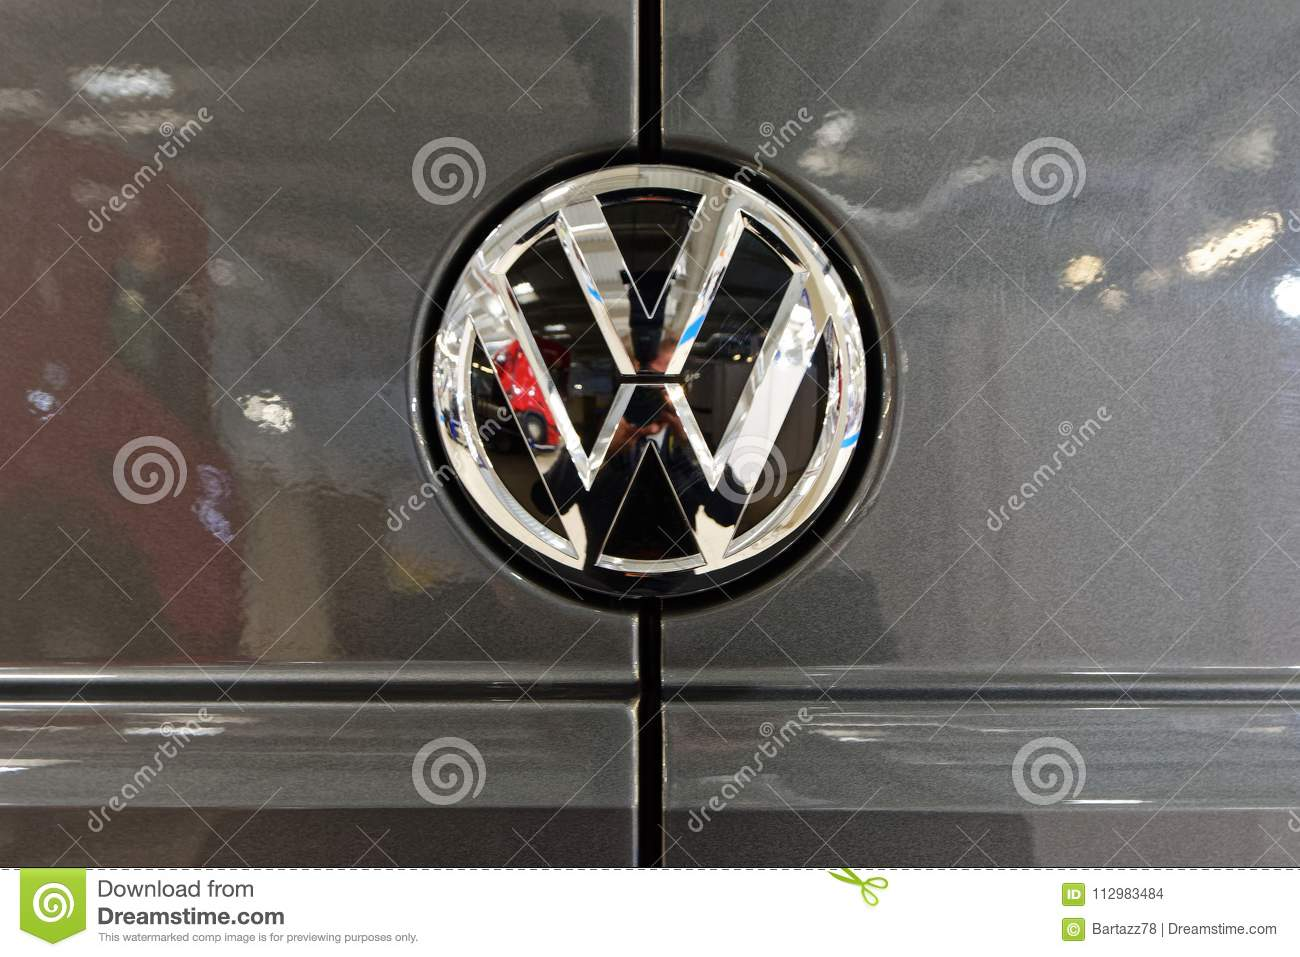 Volkswagen stylish logo and shiny badge